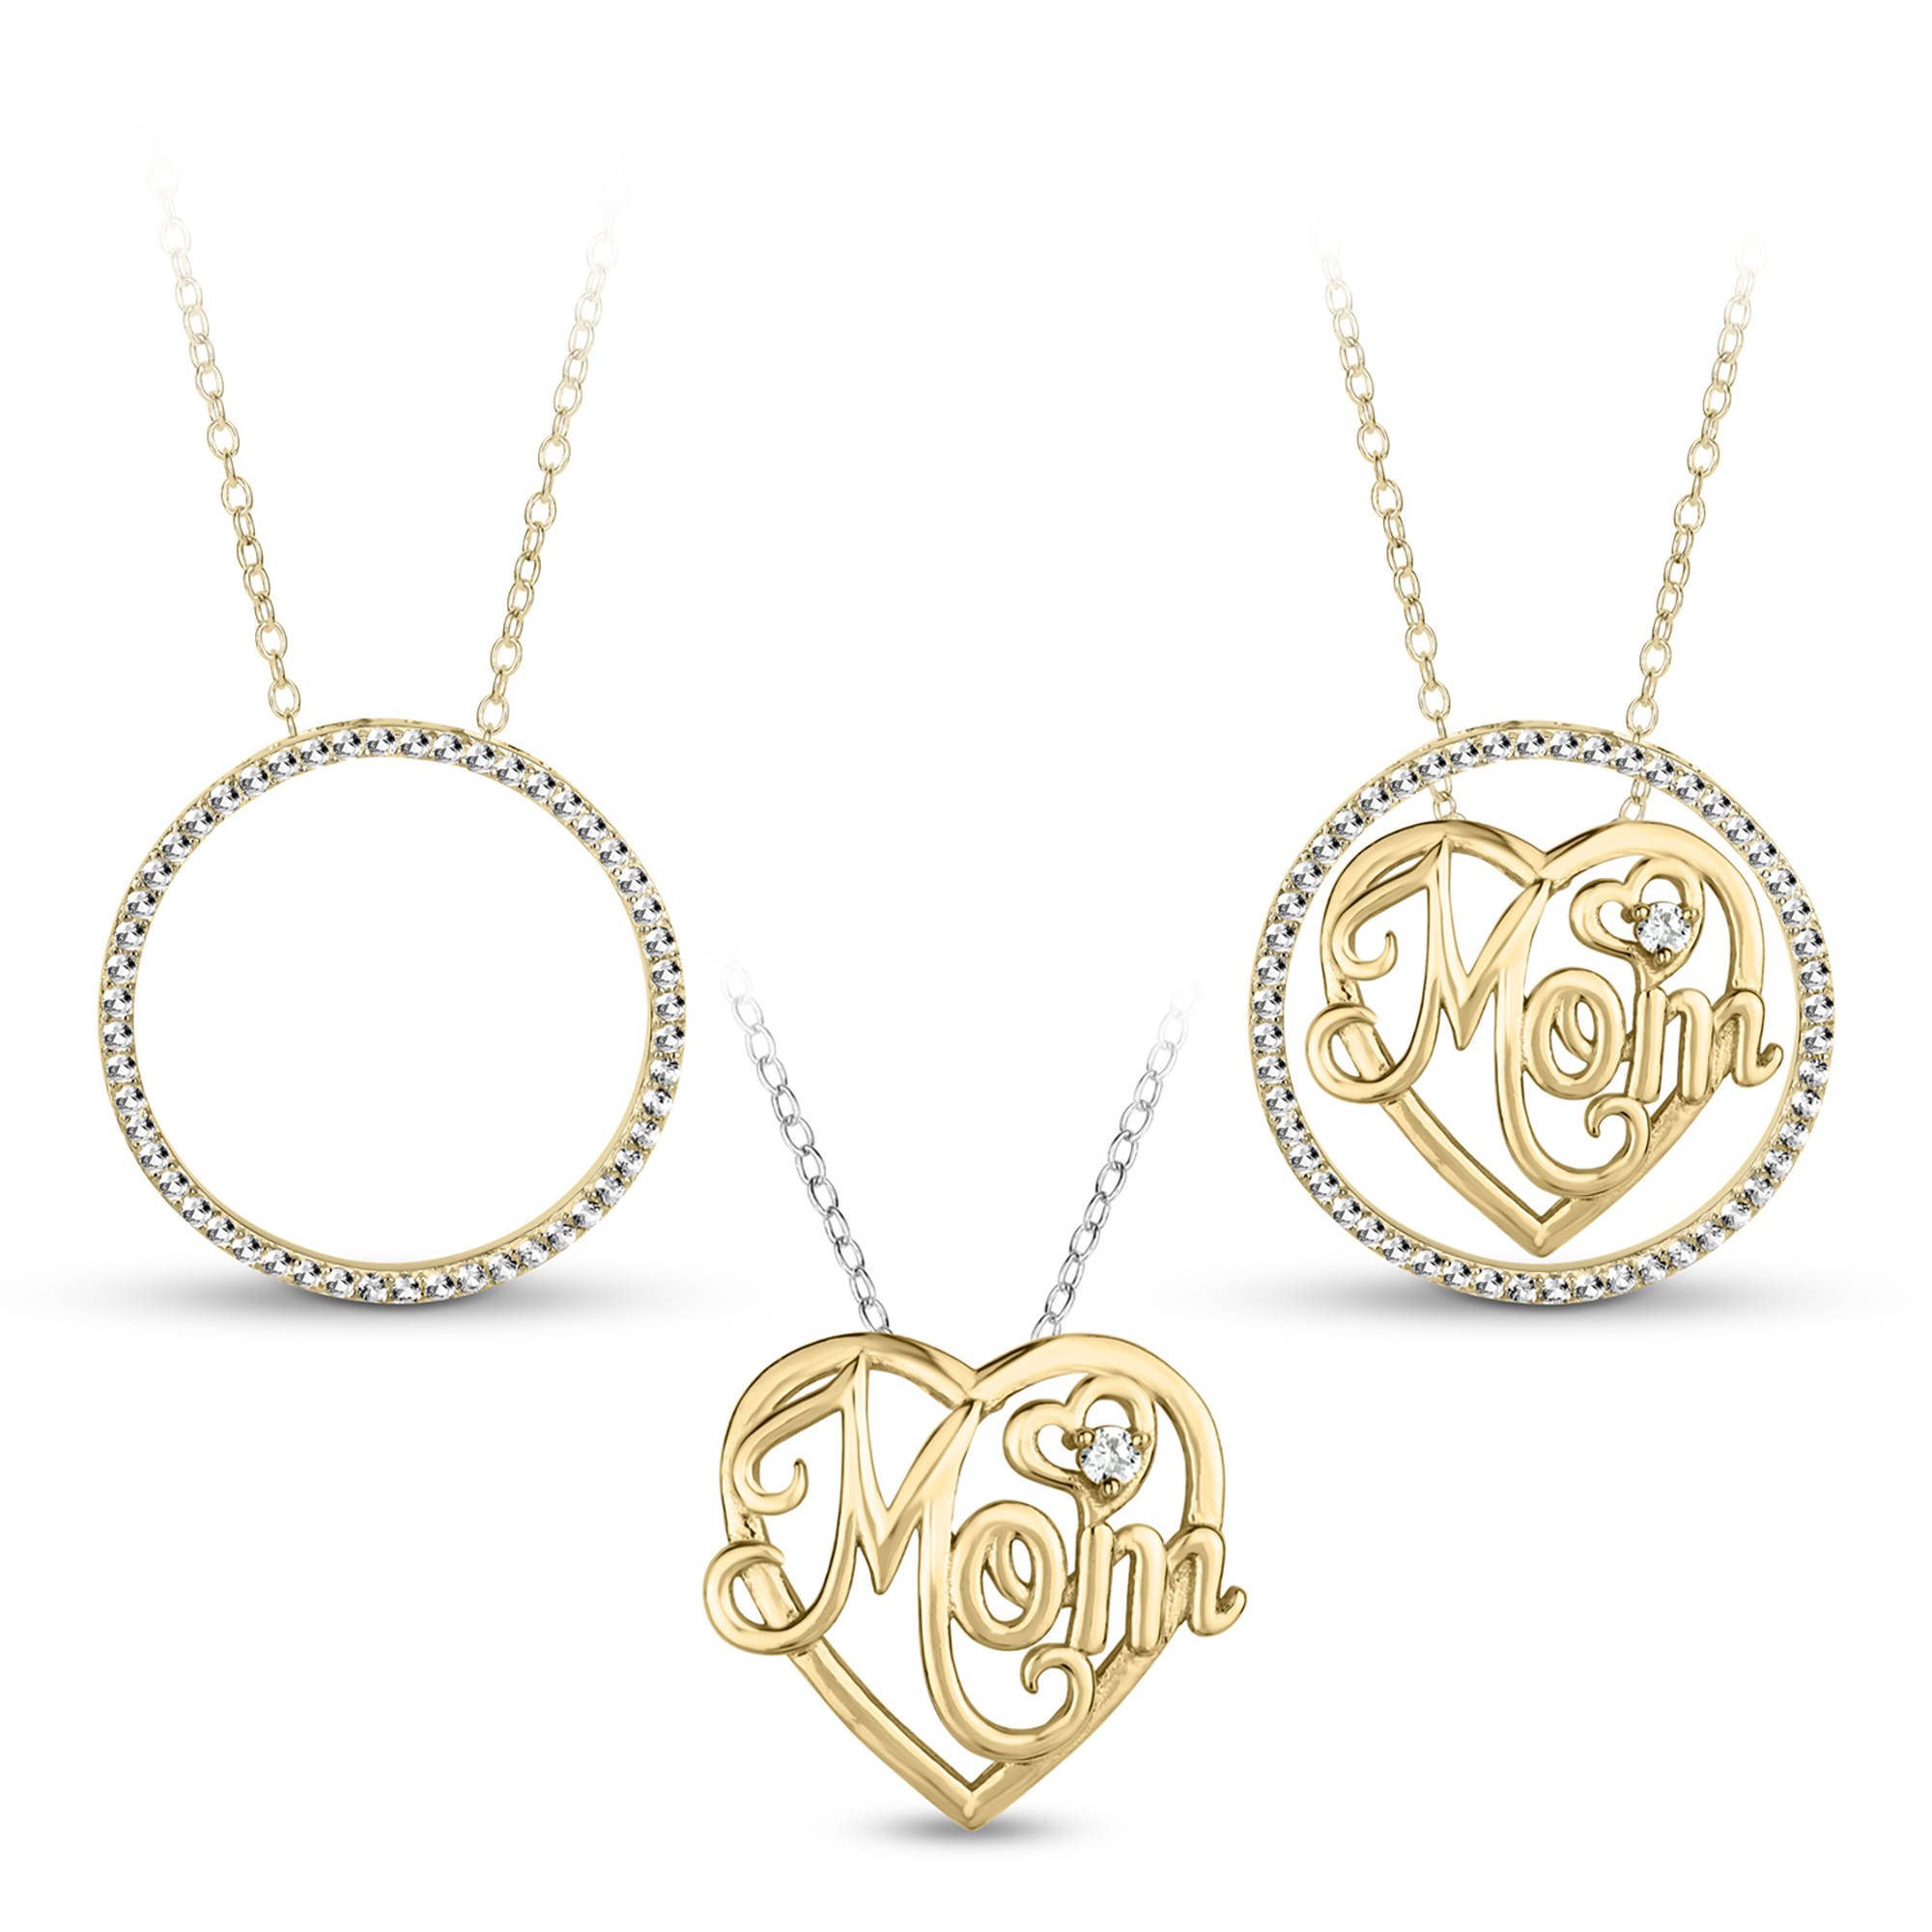 White CZ Sterling Silver and 18kt Gold over Sterling Silver Mom Heart Circle 3-in-1 Interchangeable Necklace, 18""